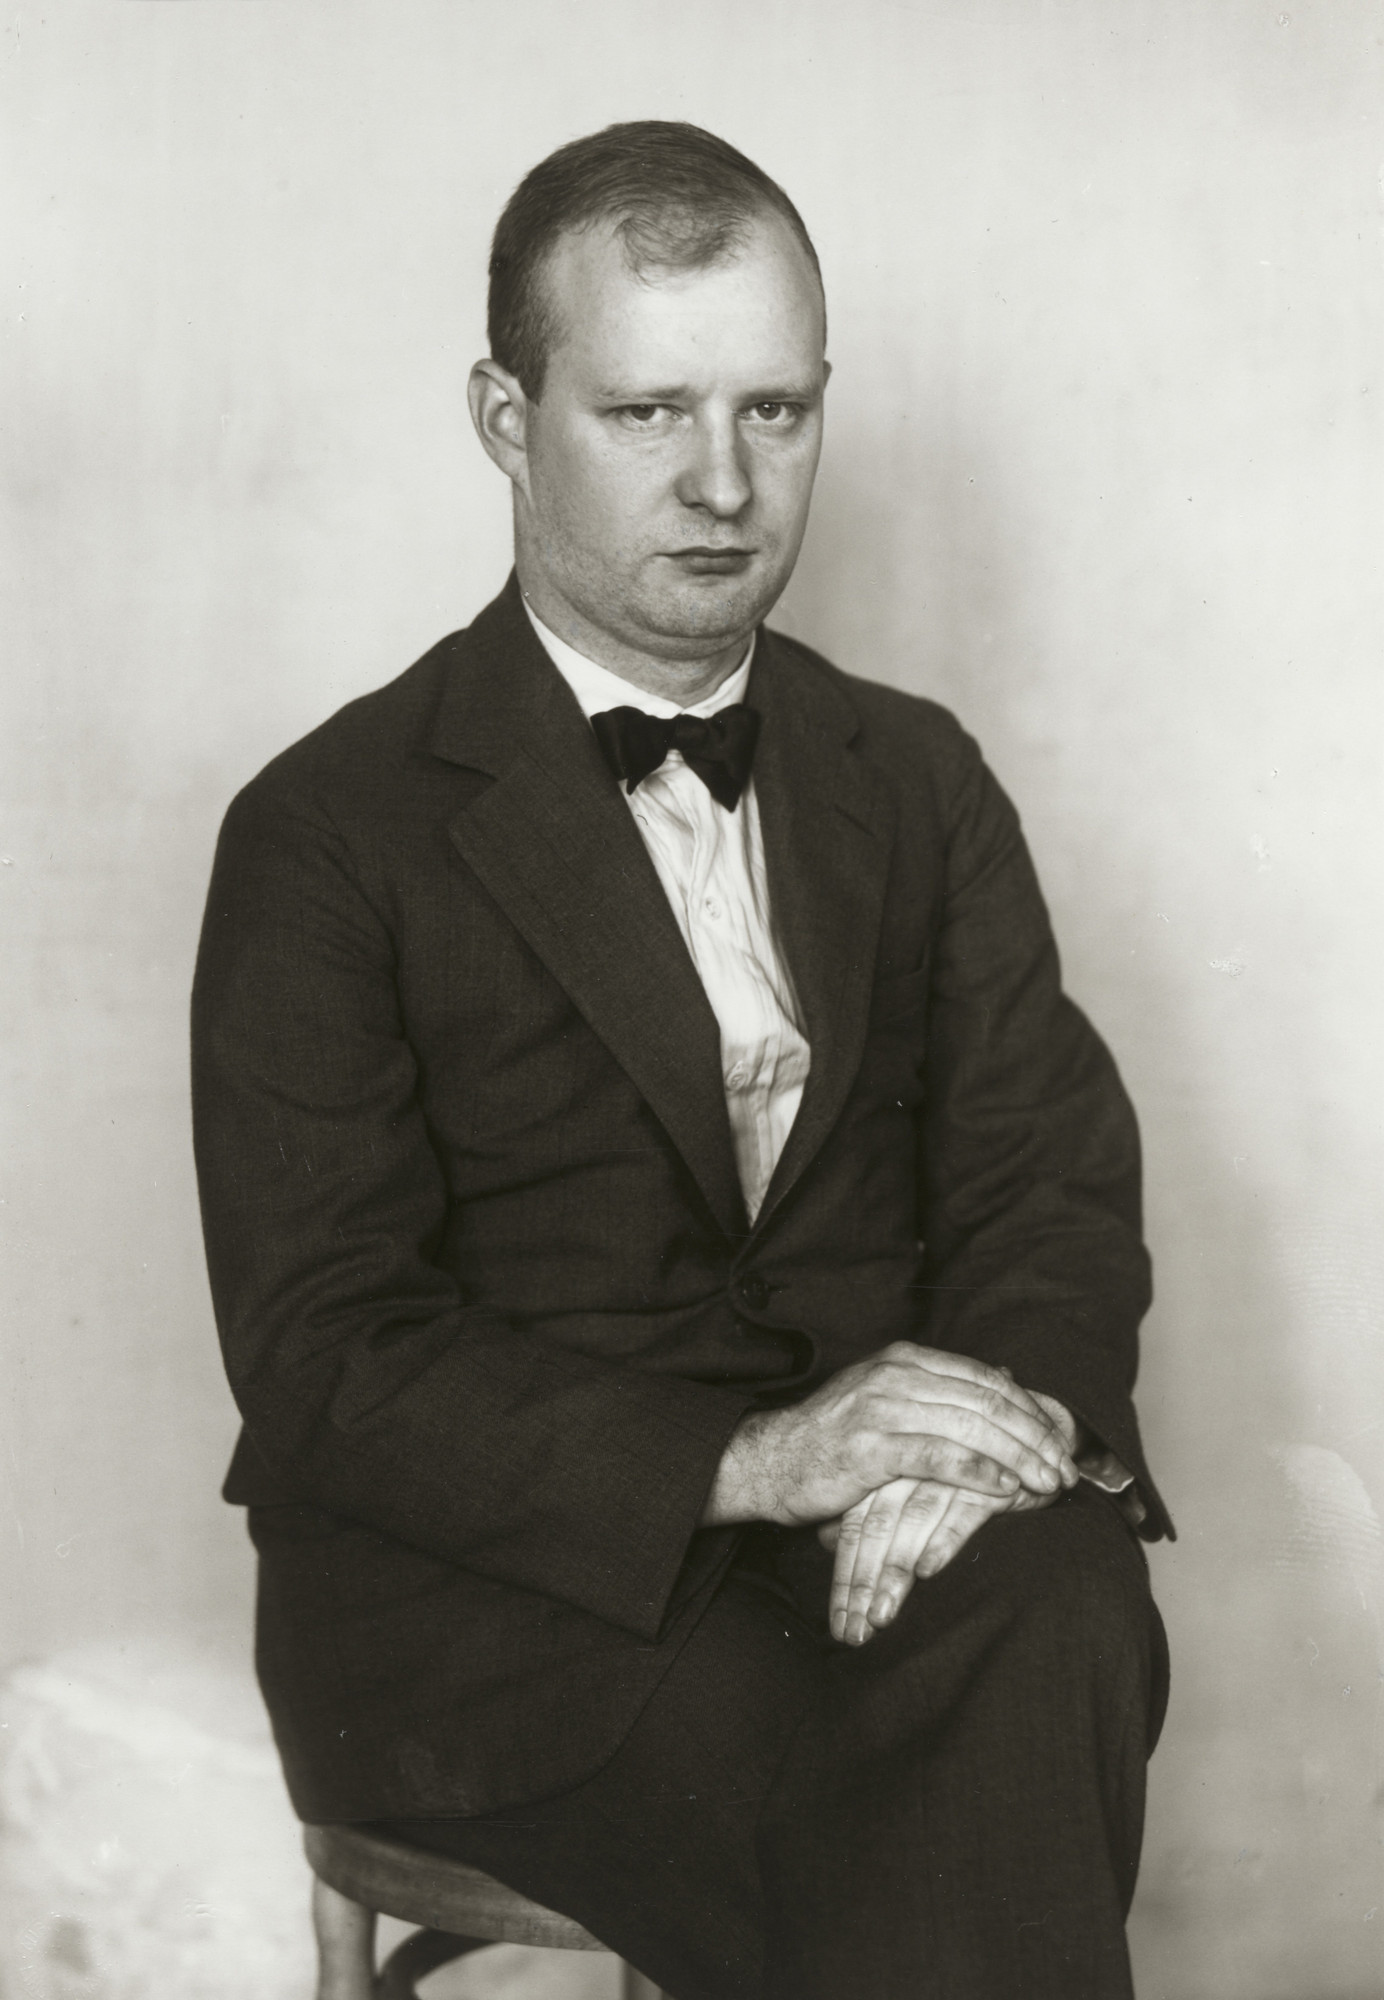 August Sander. The Composer [Paul Hindemith]. c. 1925